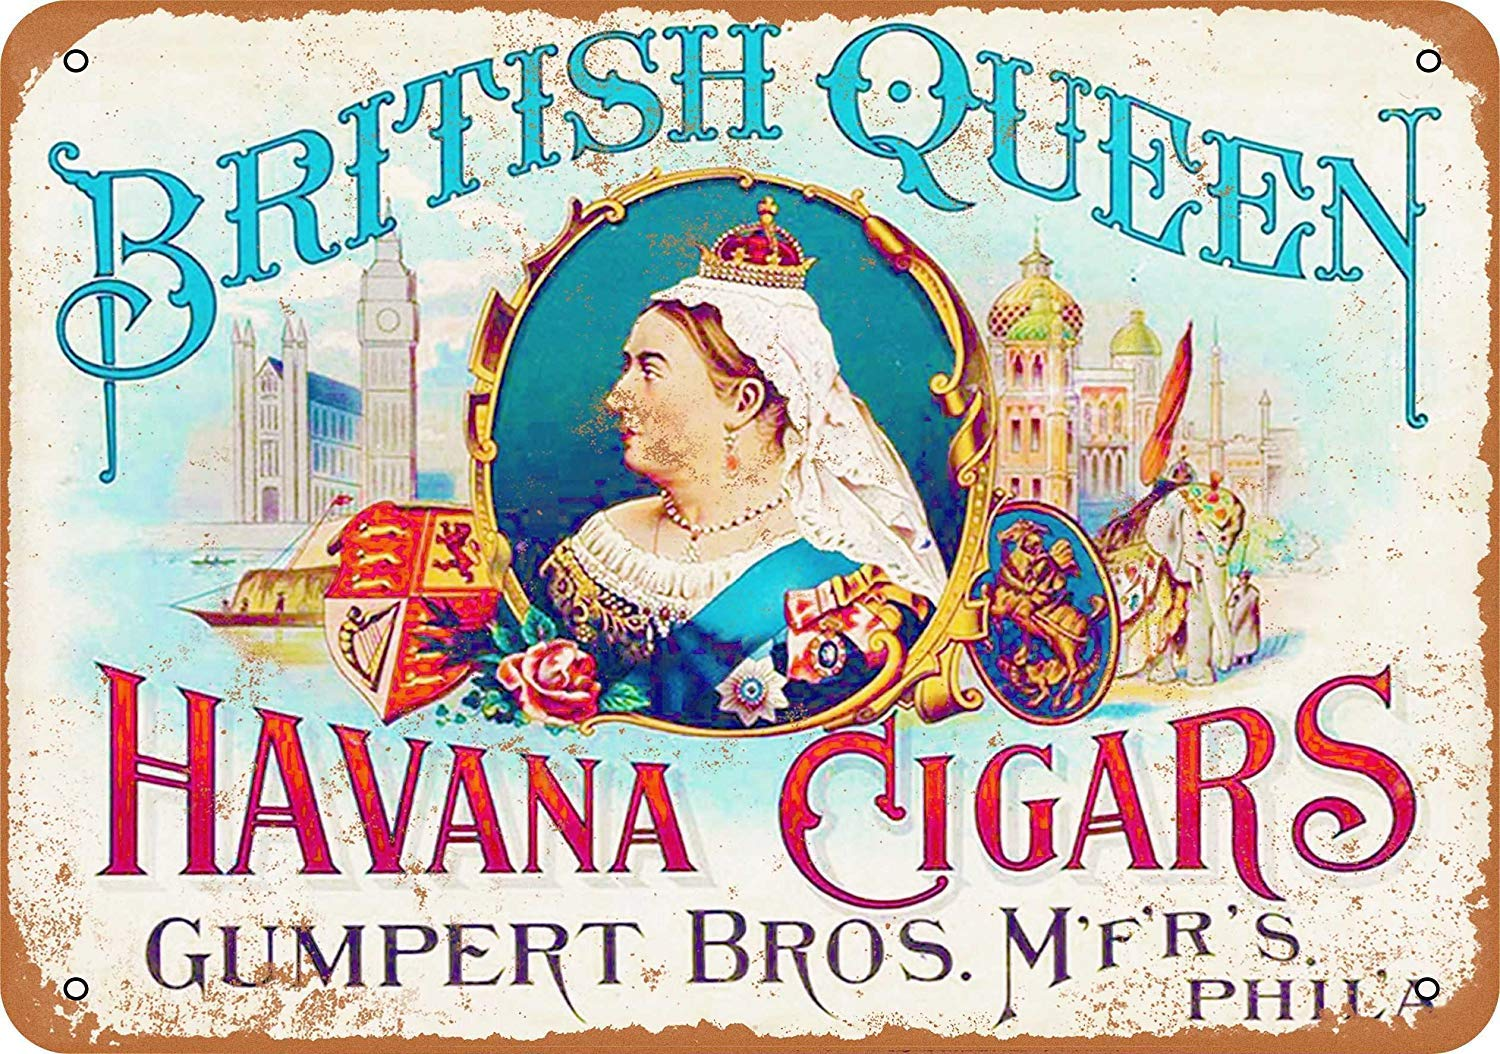 Sary buri British Queen Havana Cigars Metal Cartel De Arte ...